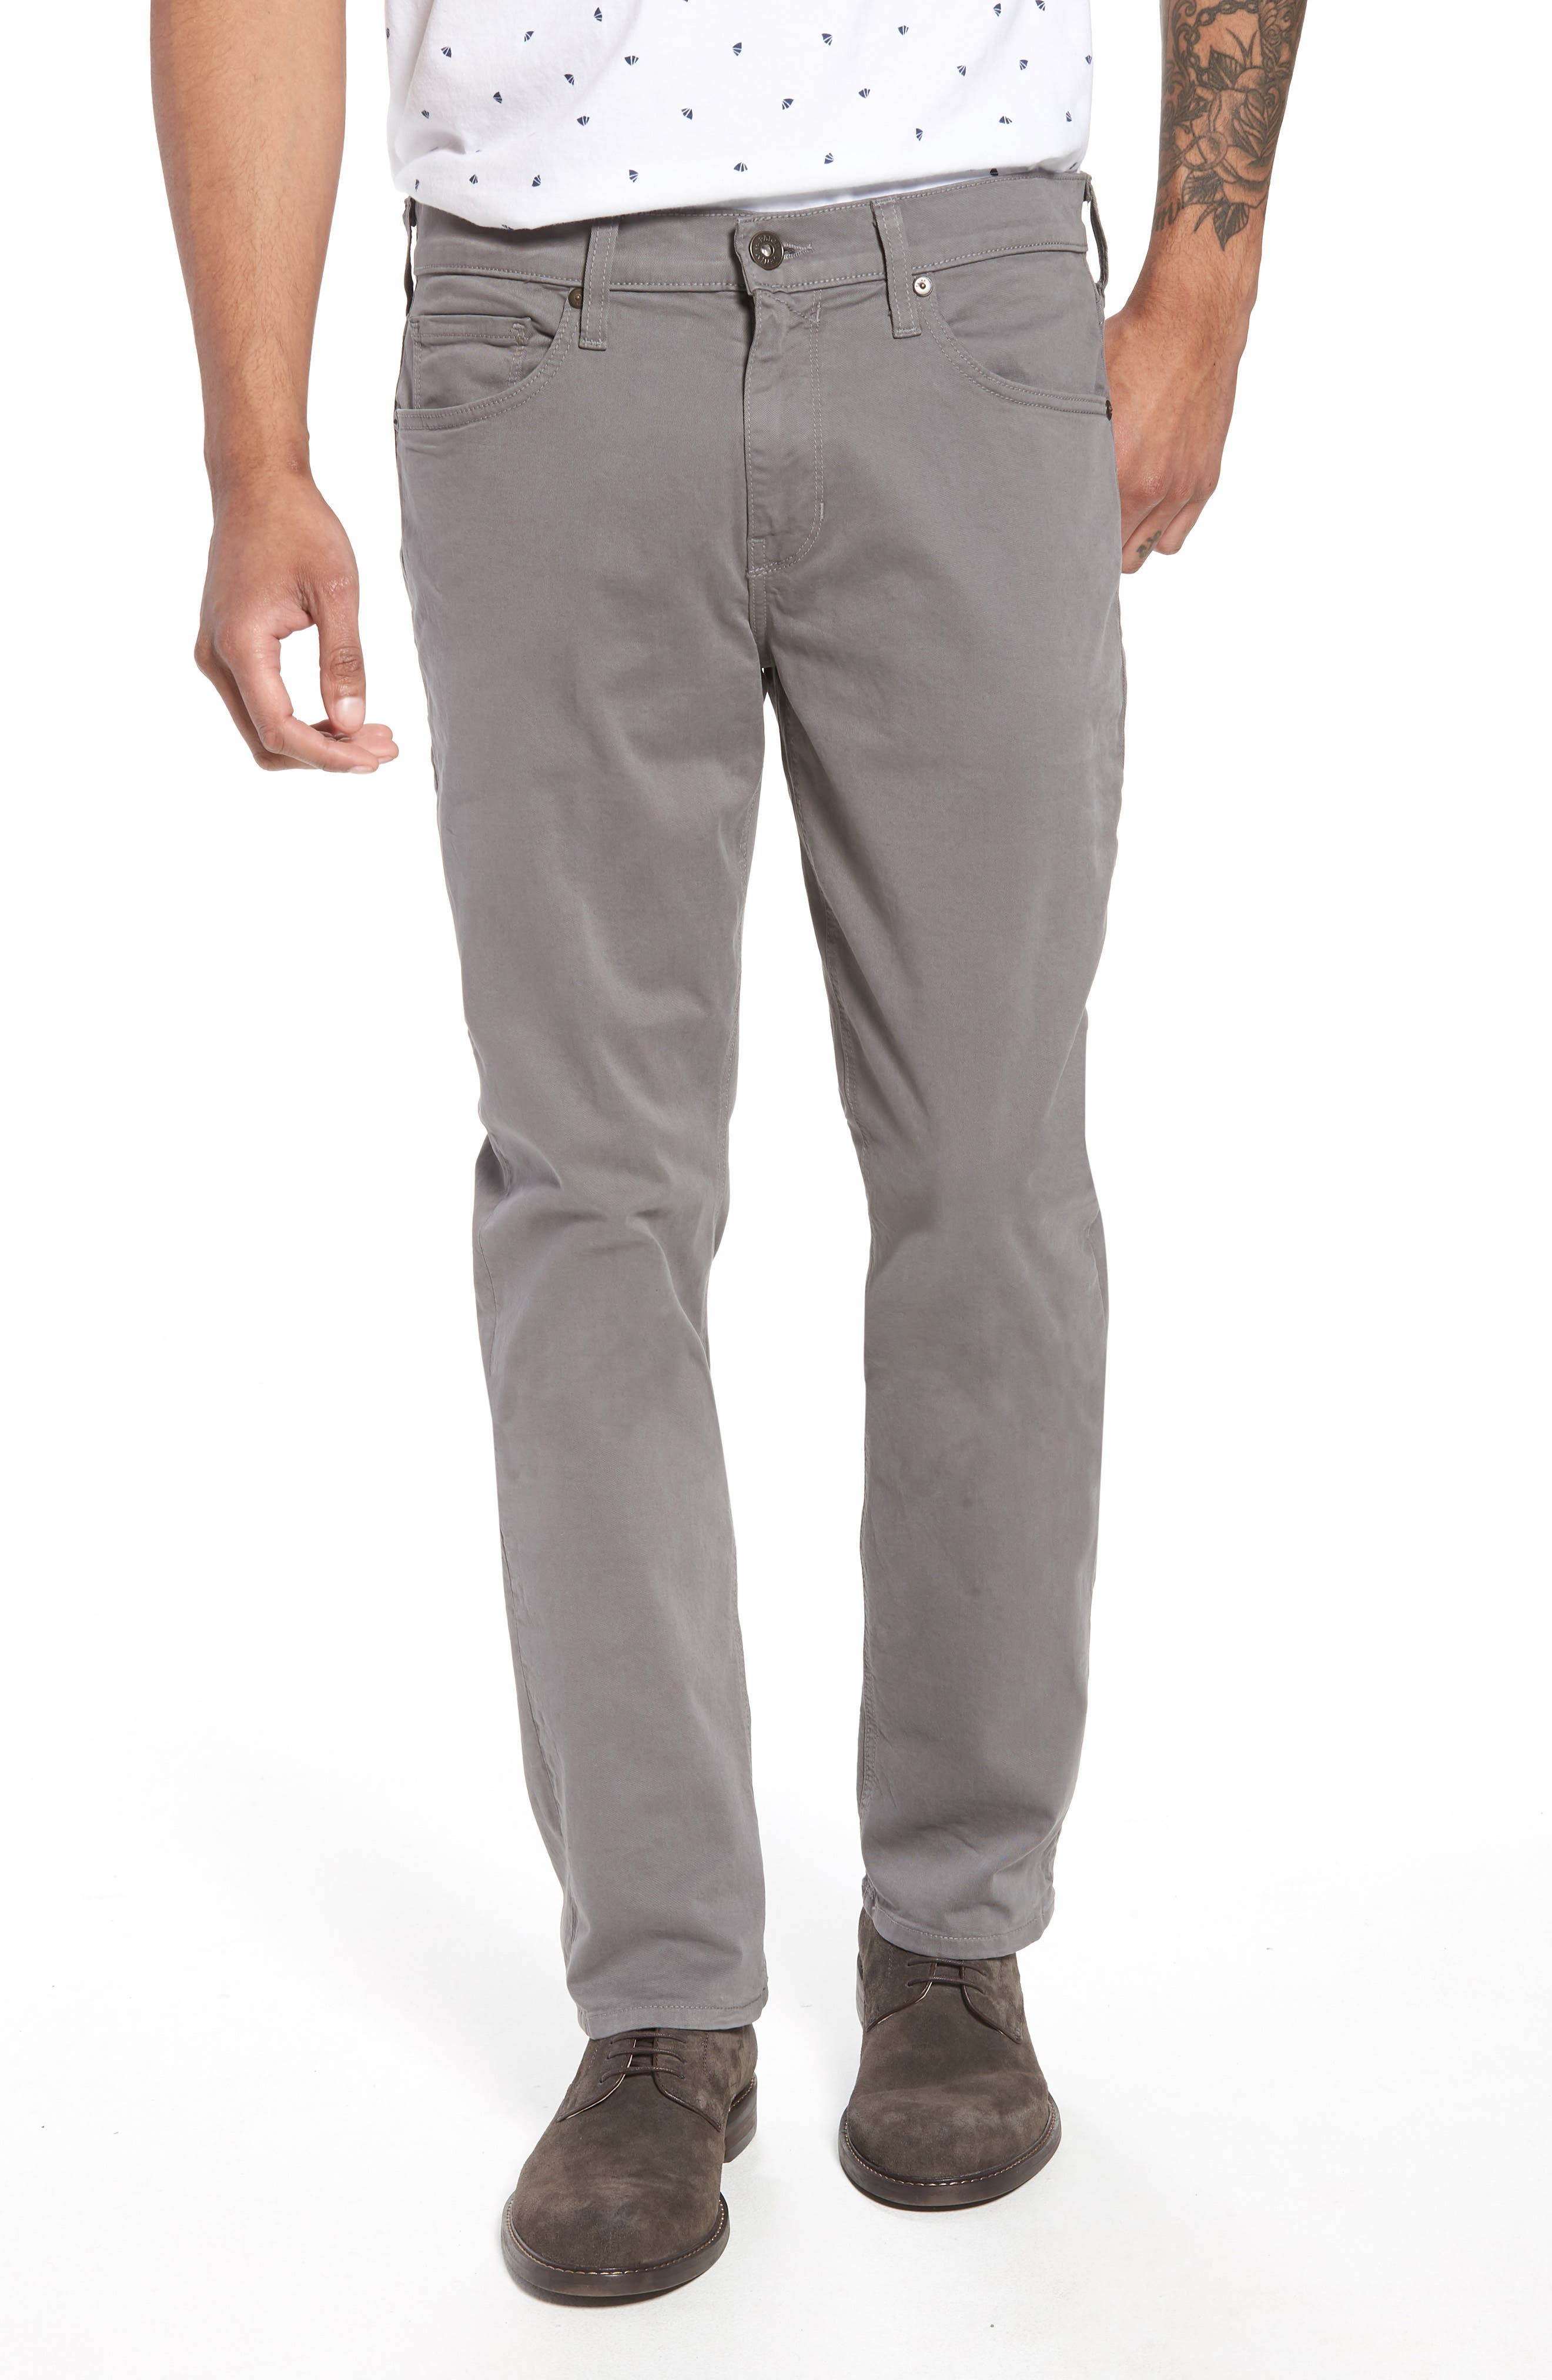 PAIGE, 'Federal' Slim Straight Leg Twill Pants, Main thumbnail 1, color, 022